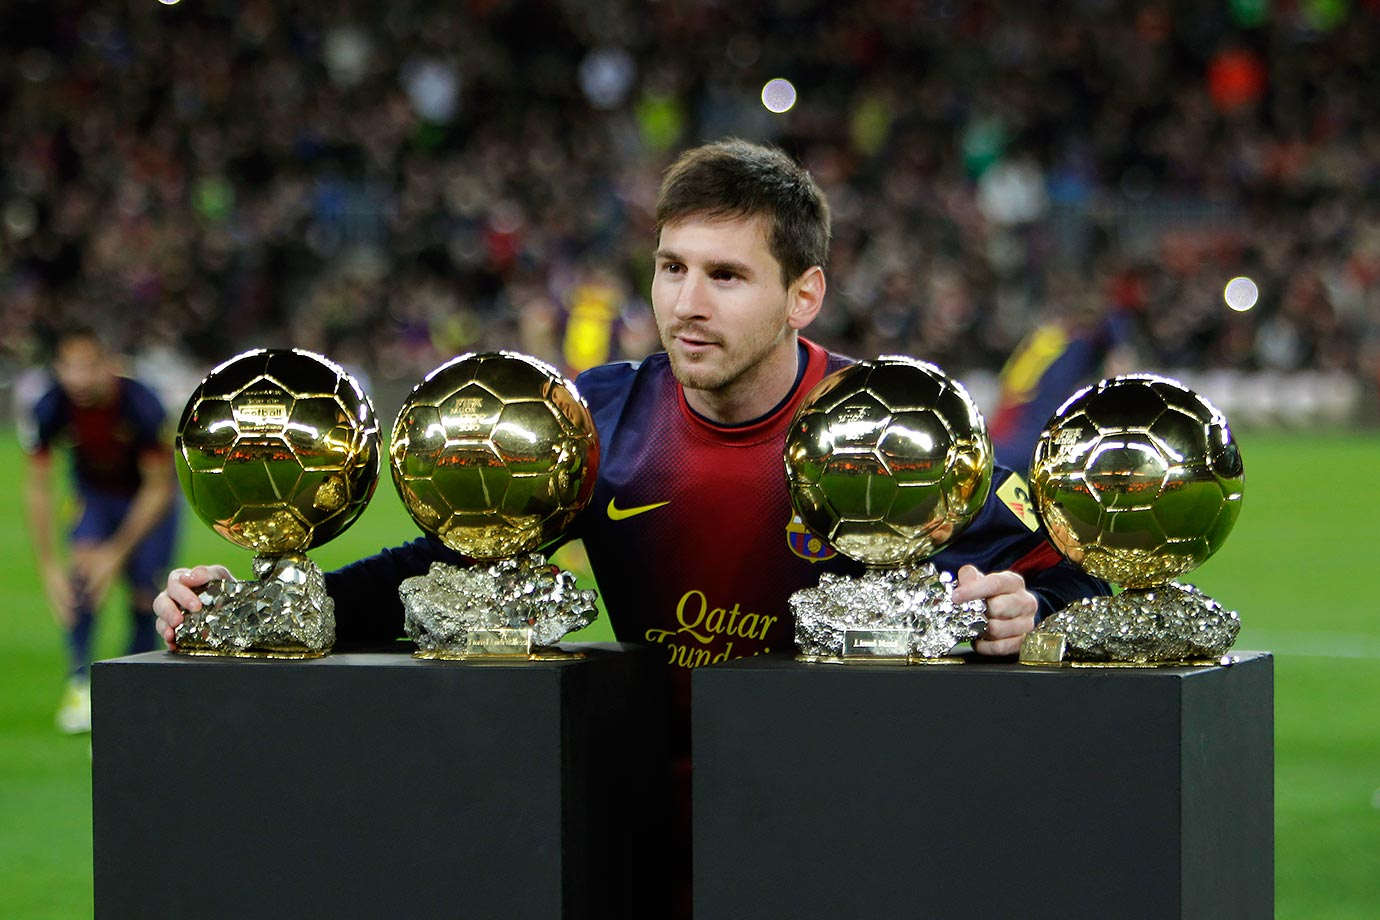 Barcelona's Lionel Messi poses with his four FIFA Men's World Player of the Year awards before a Copa del Rey match against Malaga on Jan. 16, 2013 at the Camp Nou stadium, in Barcelona, Spain. Messi received the award for a record-breaking fourth successive year.